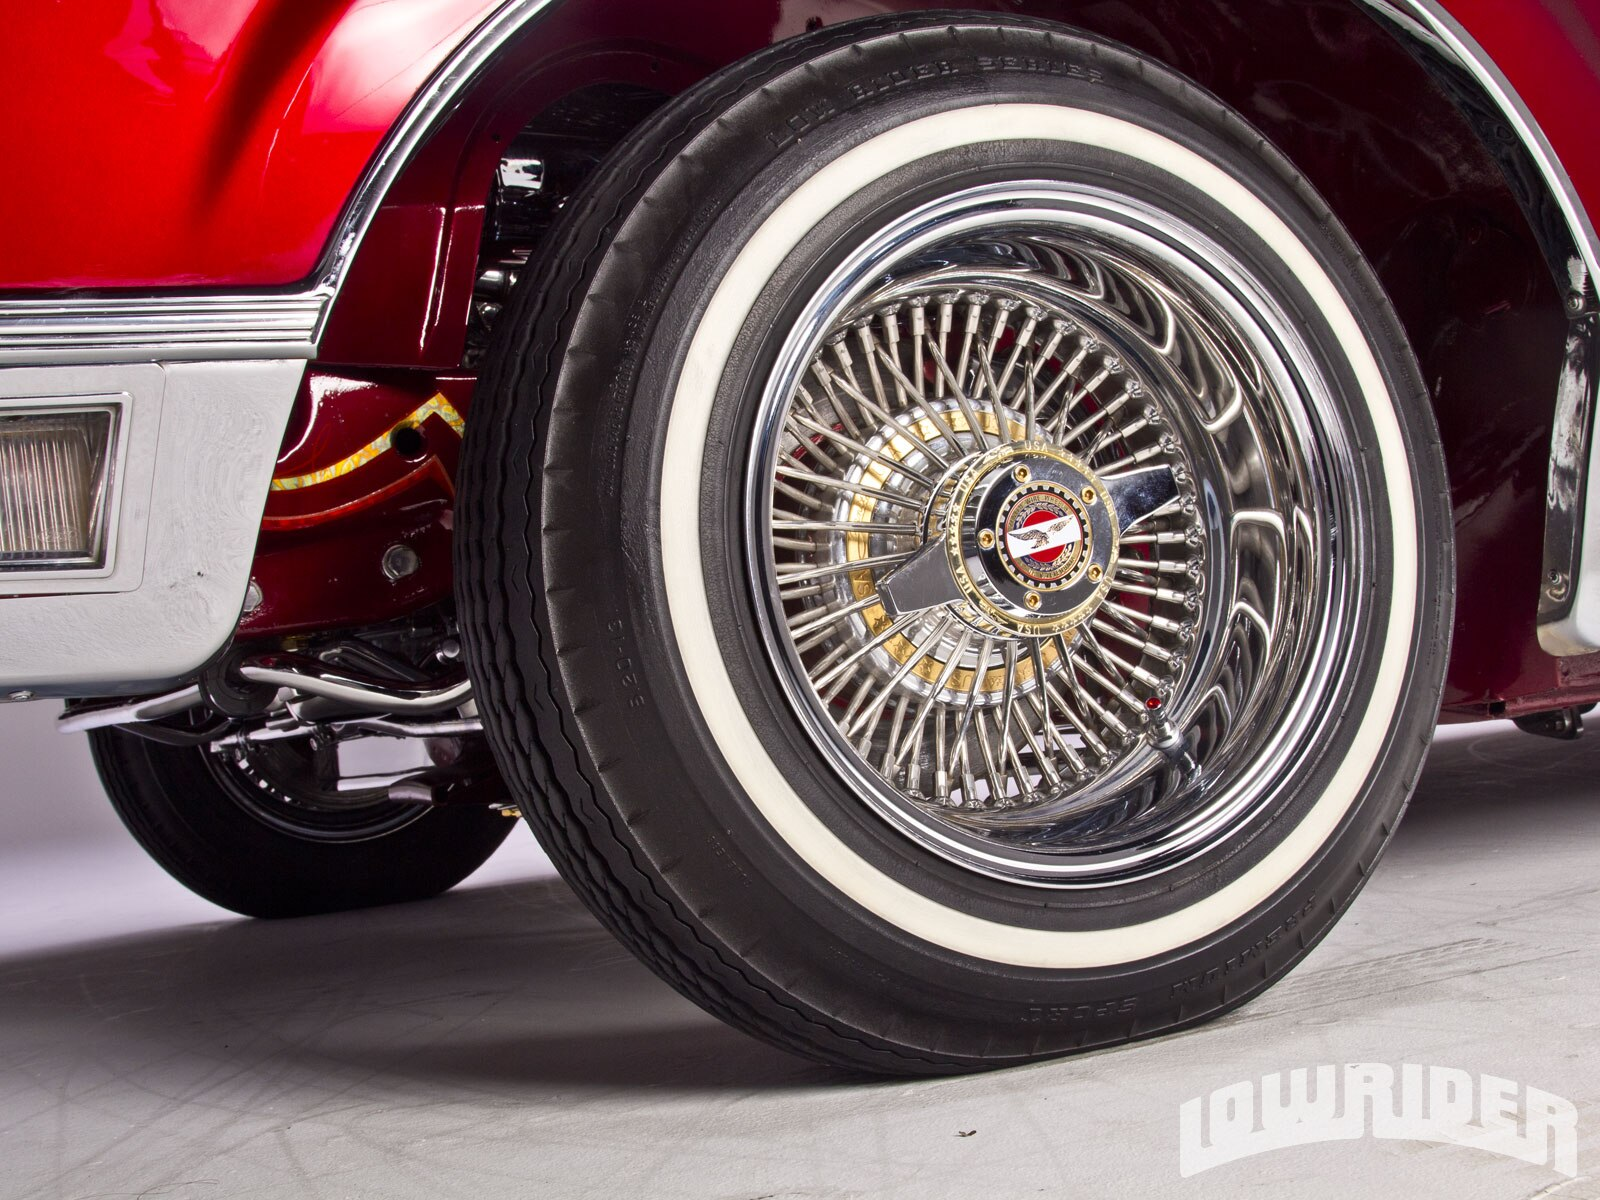 Lowrider Rims And Tires >> 1981 Lincoln Mark VI - Lowrider Magazine